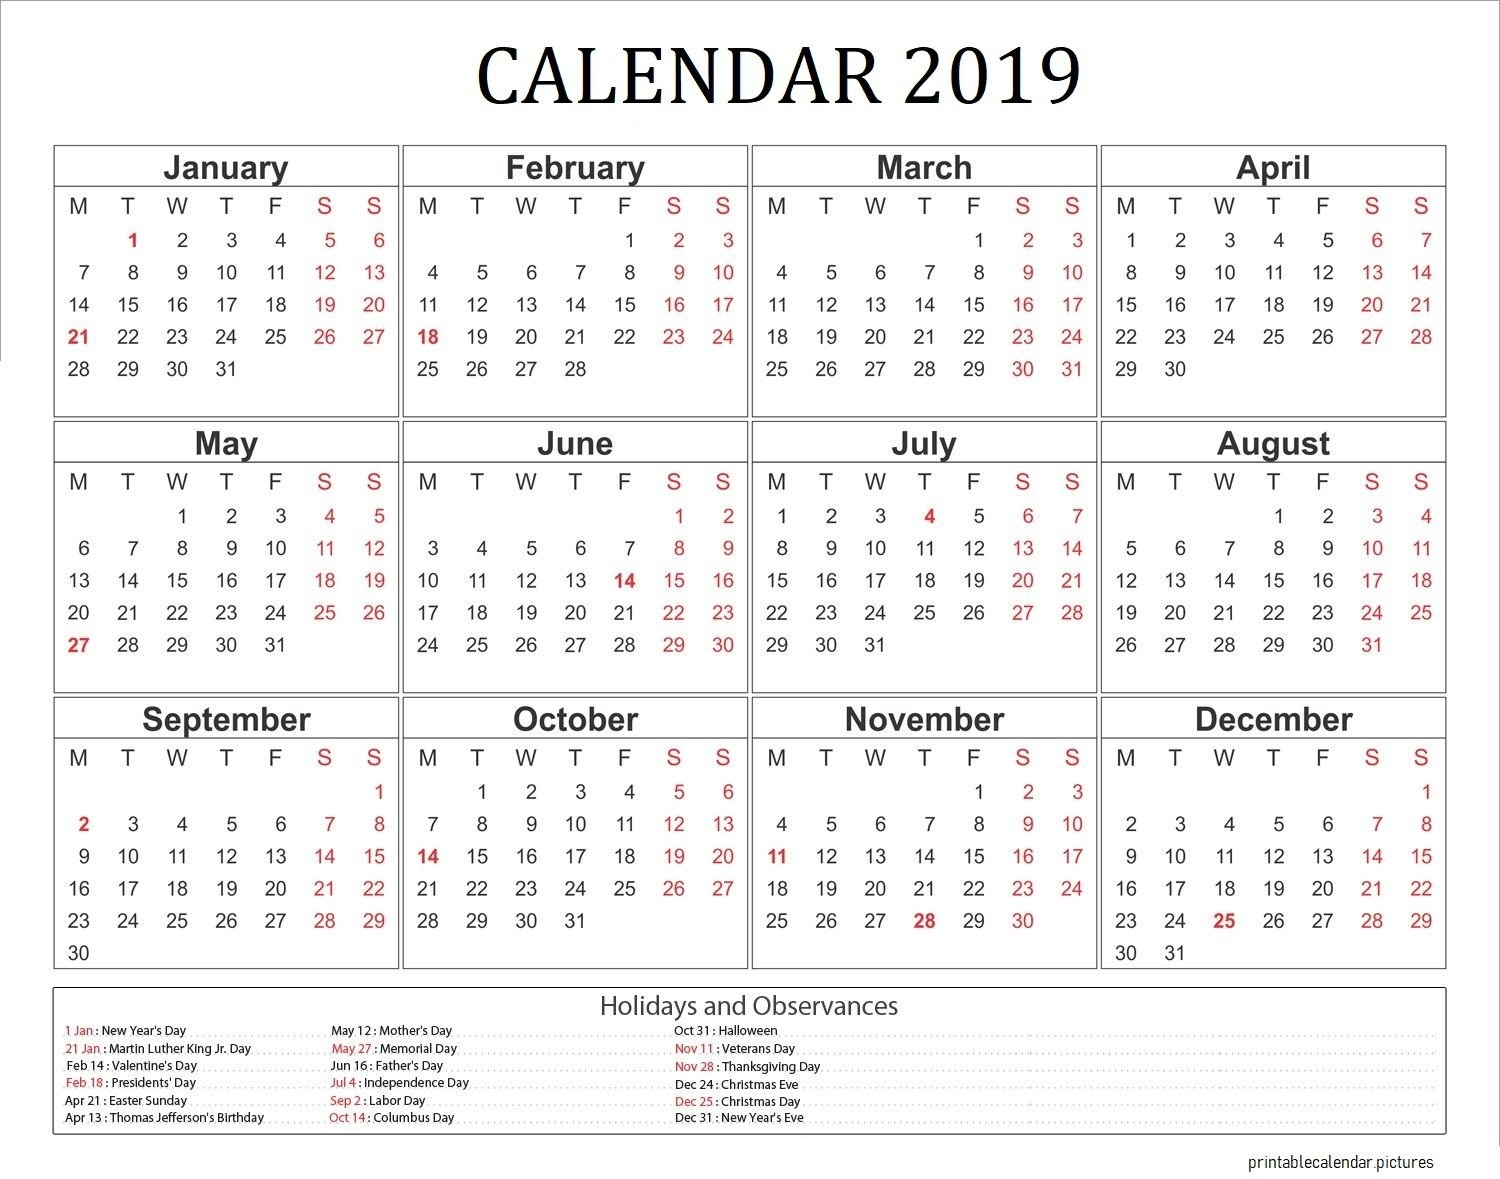 2019 Calendar With Holidays Usa | 2019 Calendar Holidays | Pinterest Calendar 2019 Showing Holidays